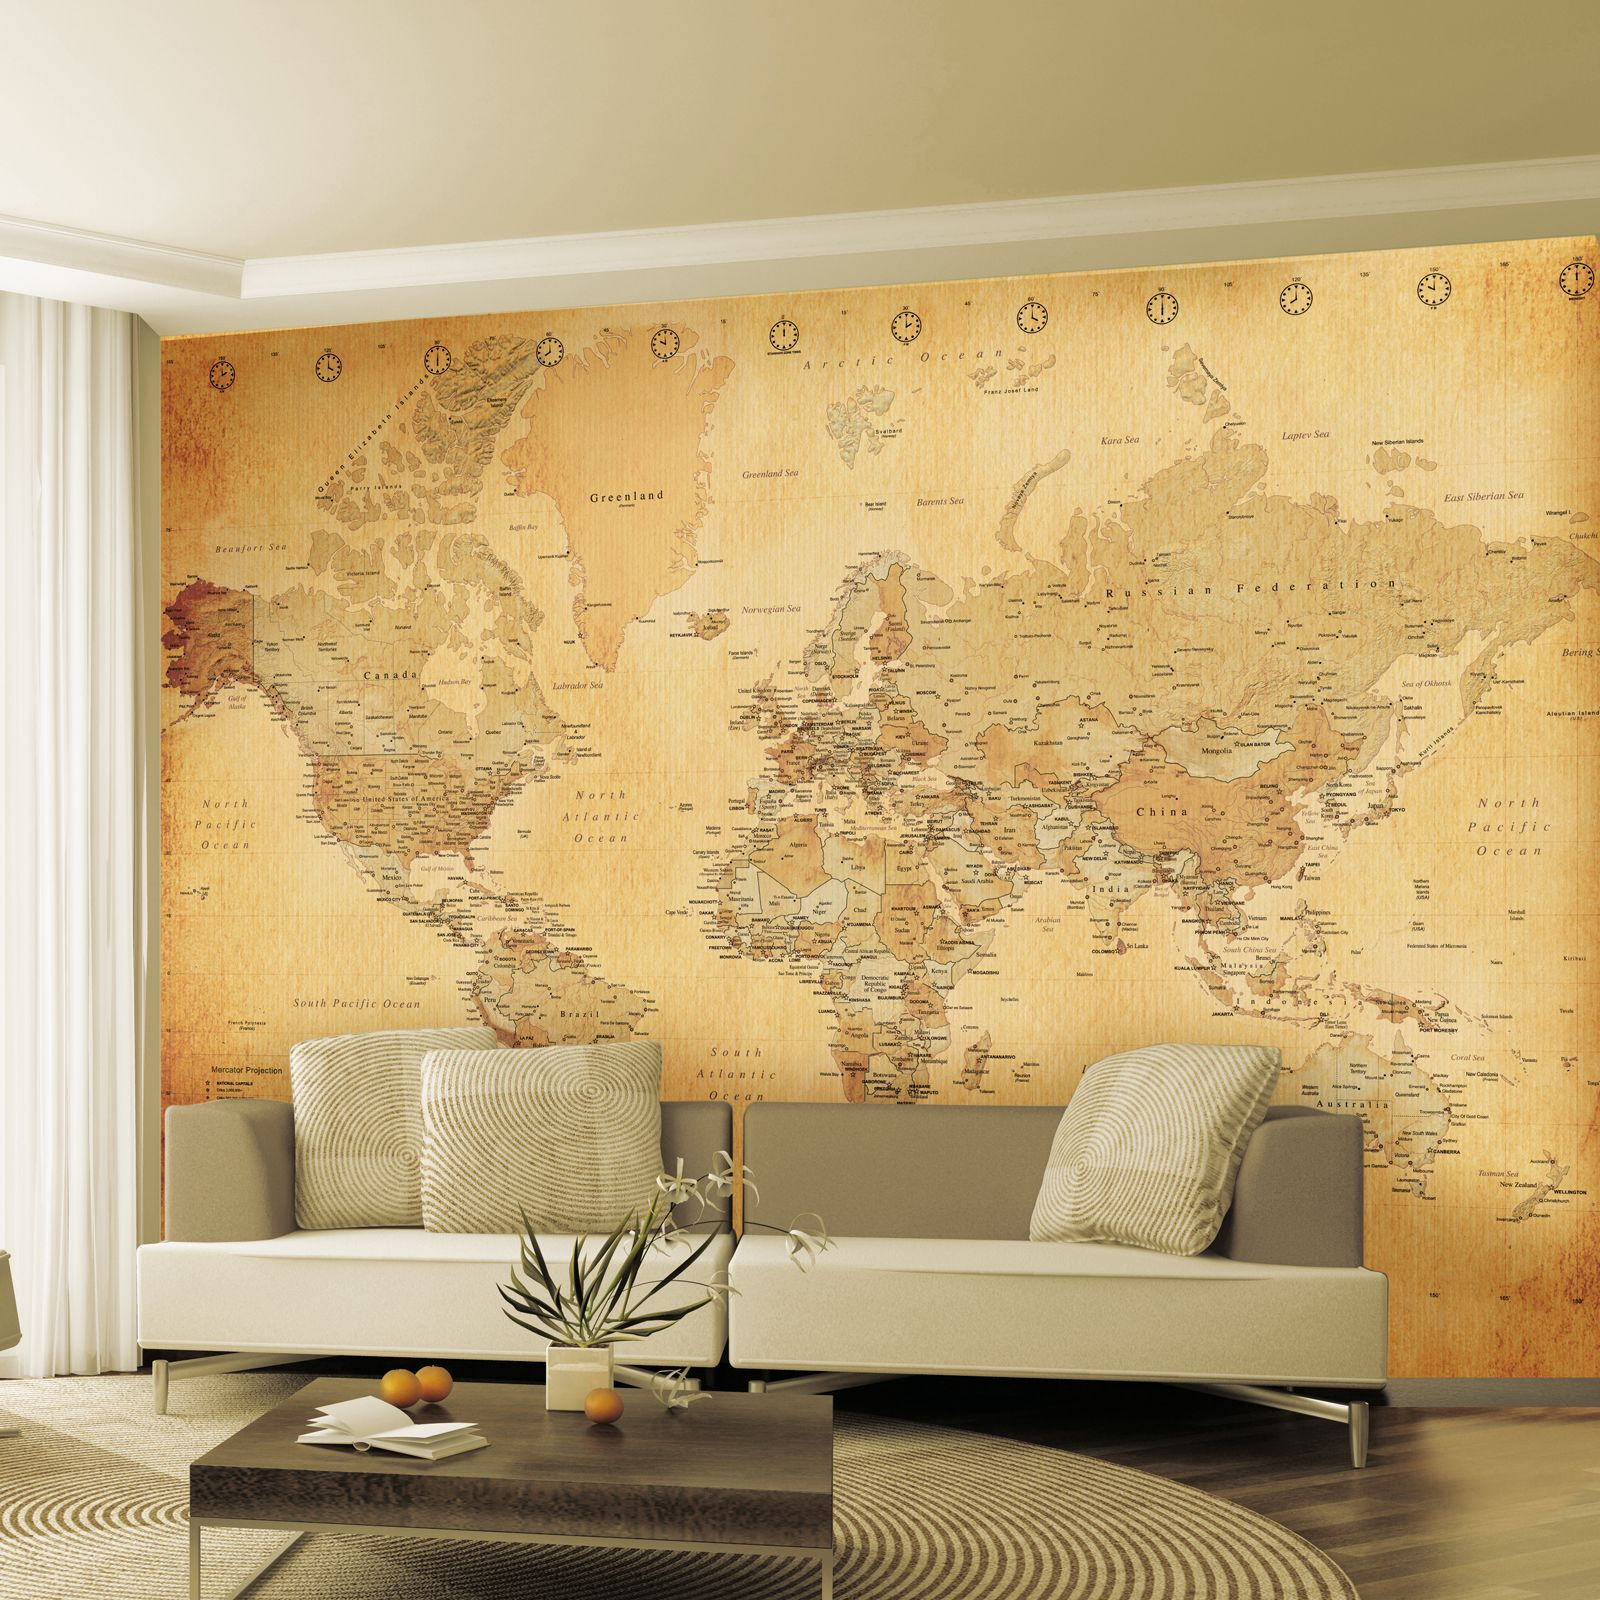 large wallpaper feature wall murals landscapes ForBig Wallpaper For Wall